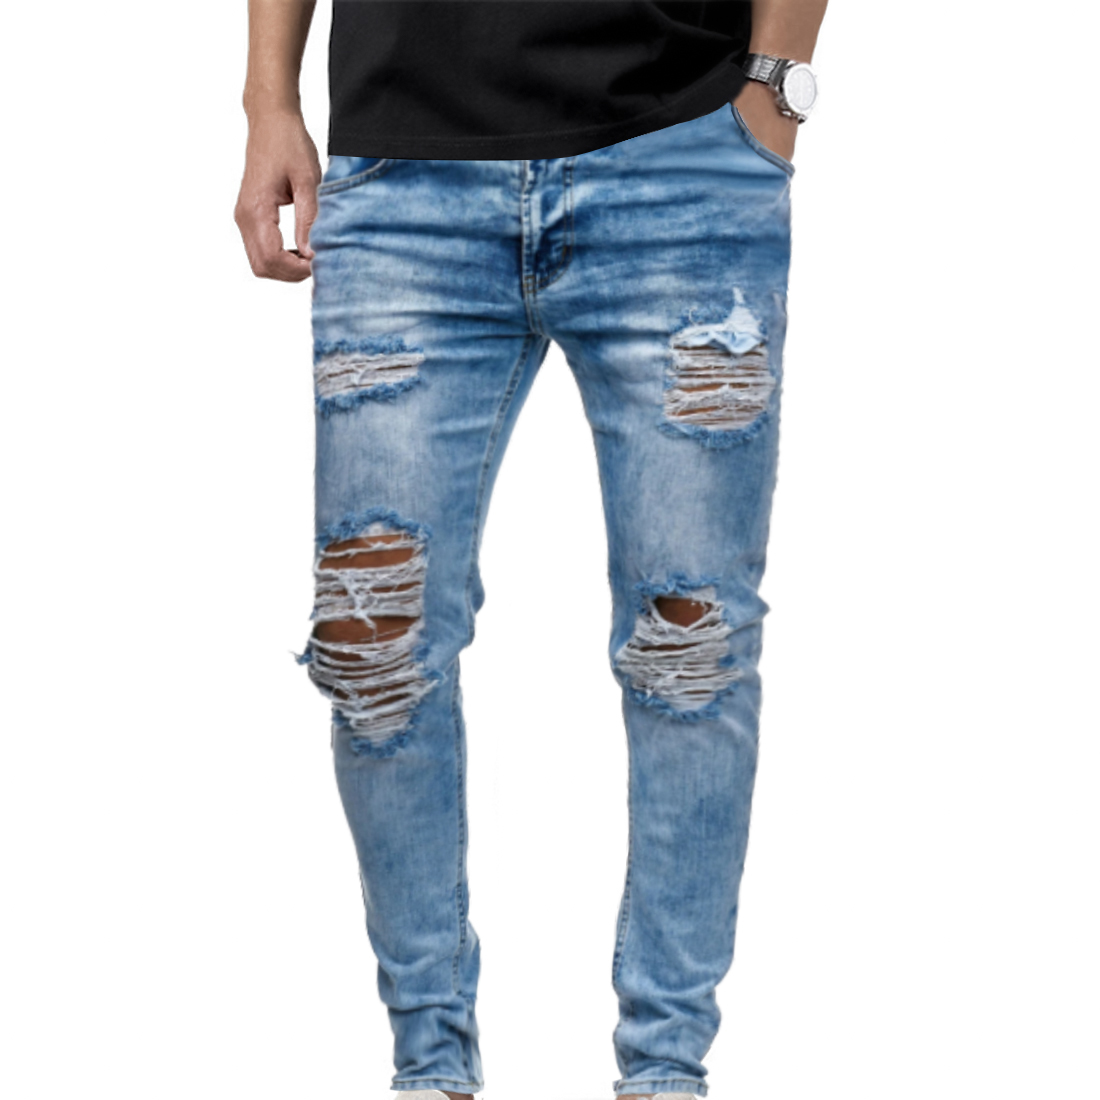 Mens Ripped Jeans For Men Casual Blue Skinny Slim Fit Denim Pants Biker Hip Hop Jeans Sexy Hole Denim Pants Streetwear NEW 2020